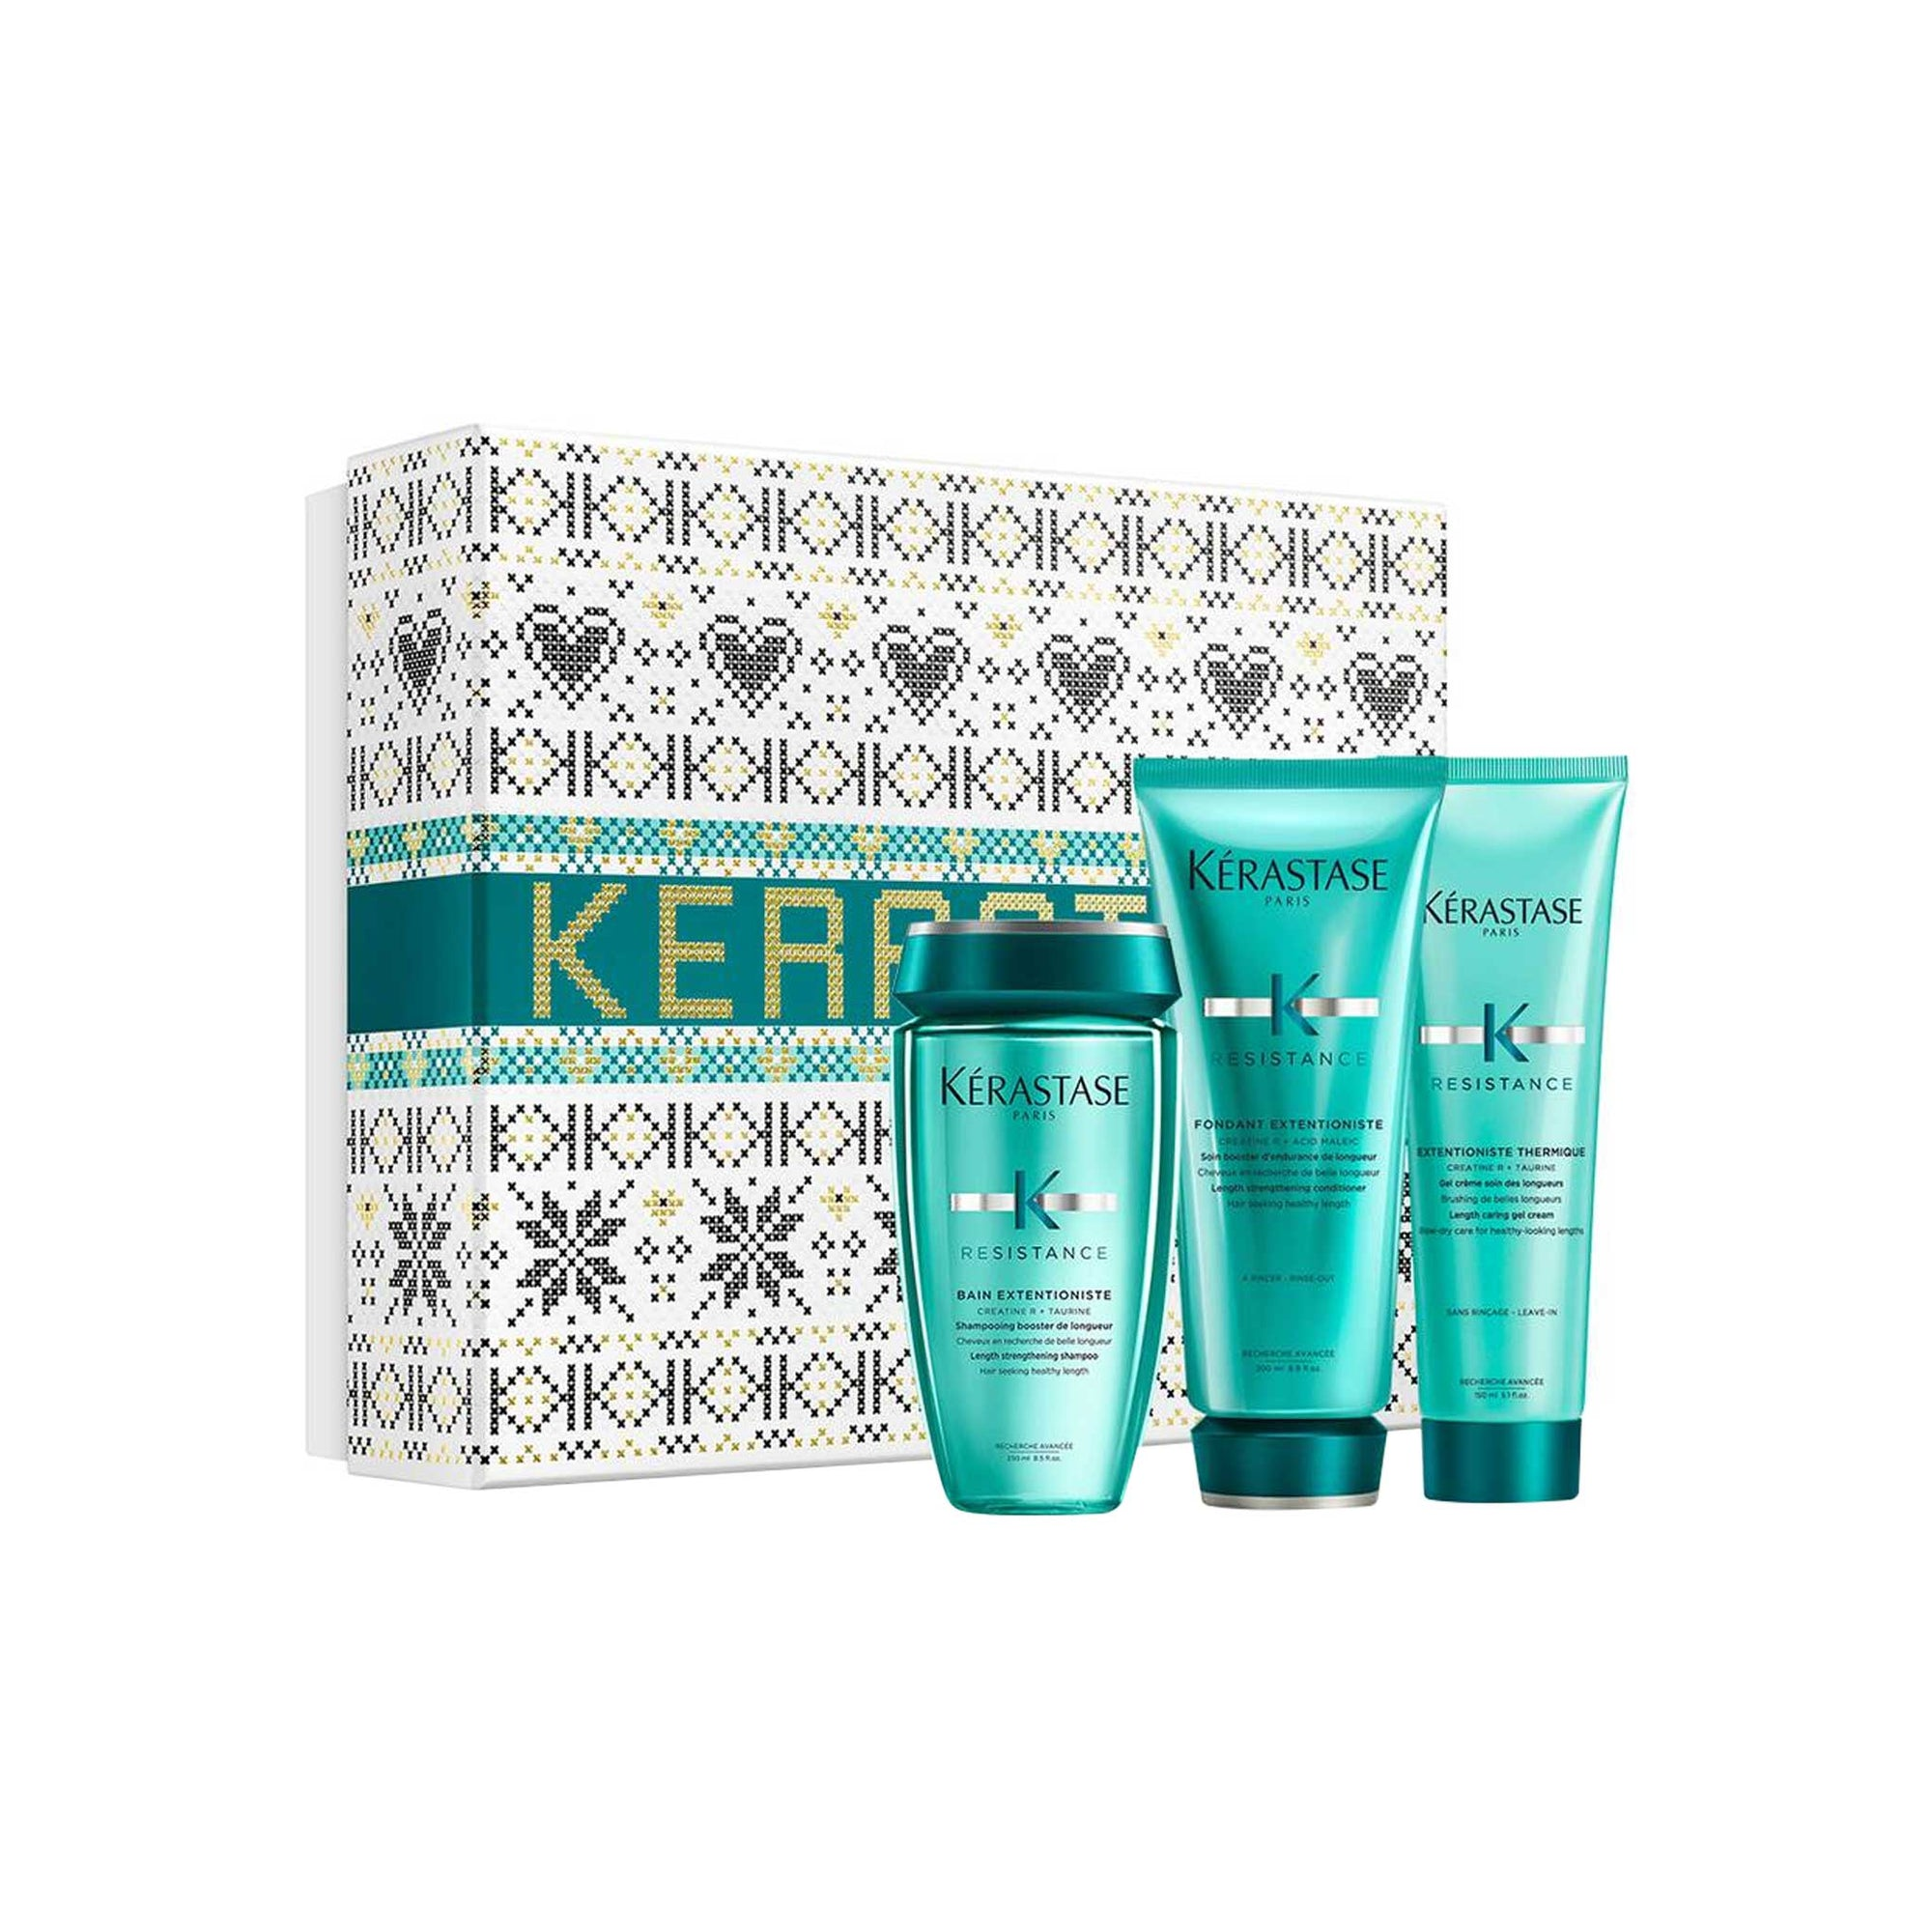 Kerastase Extentioniste Luxury Gift Set For Healthier Looking Lengths